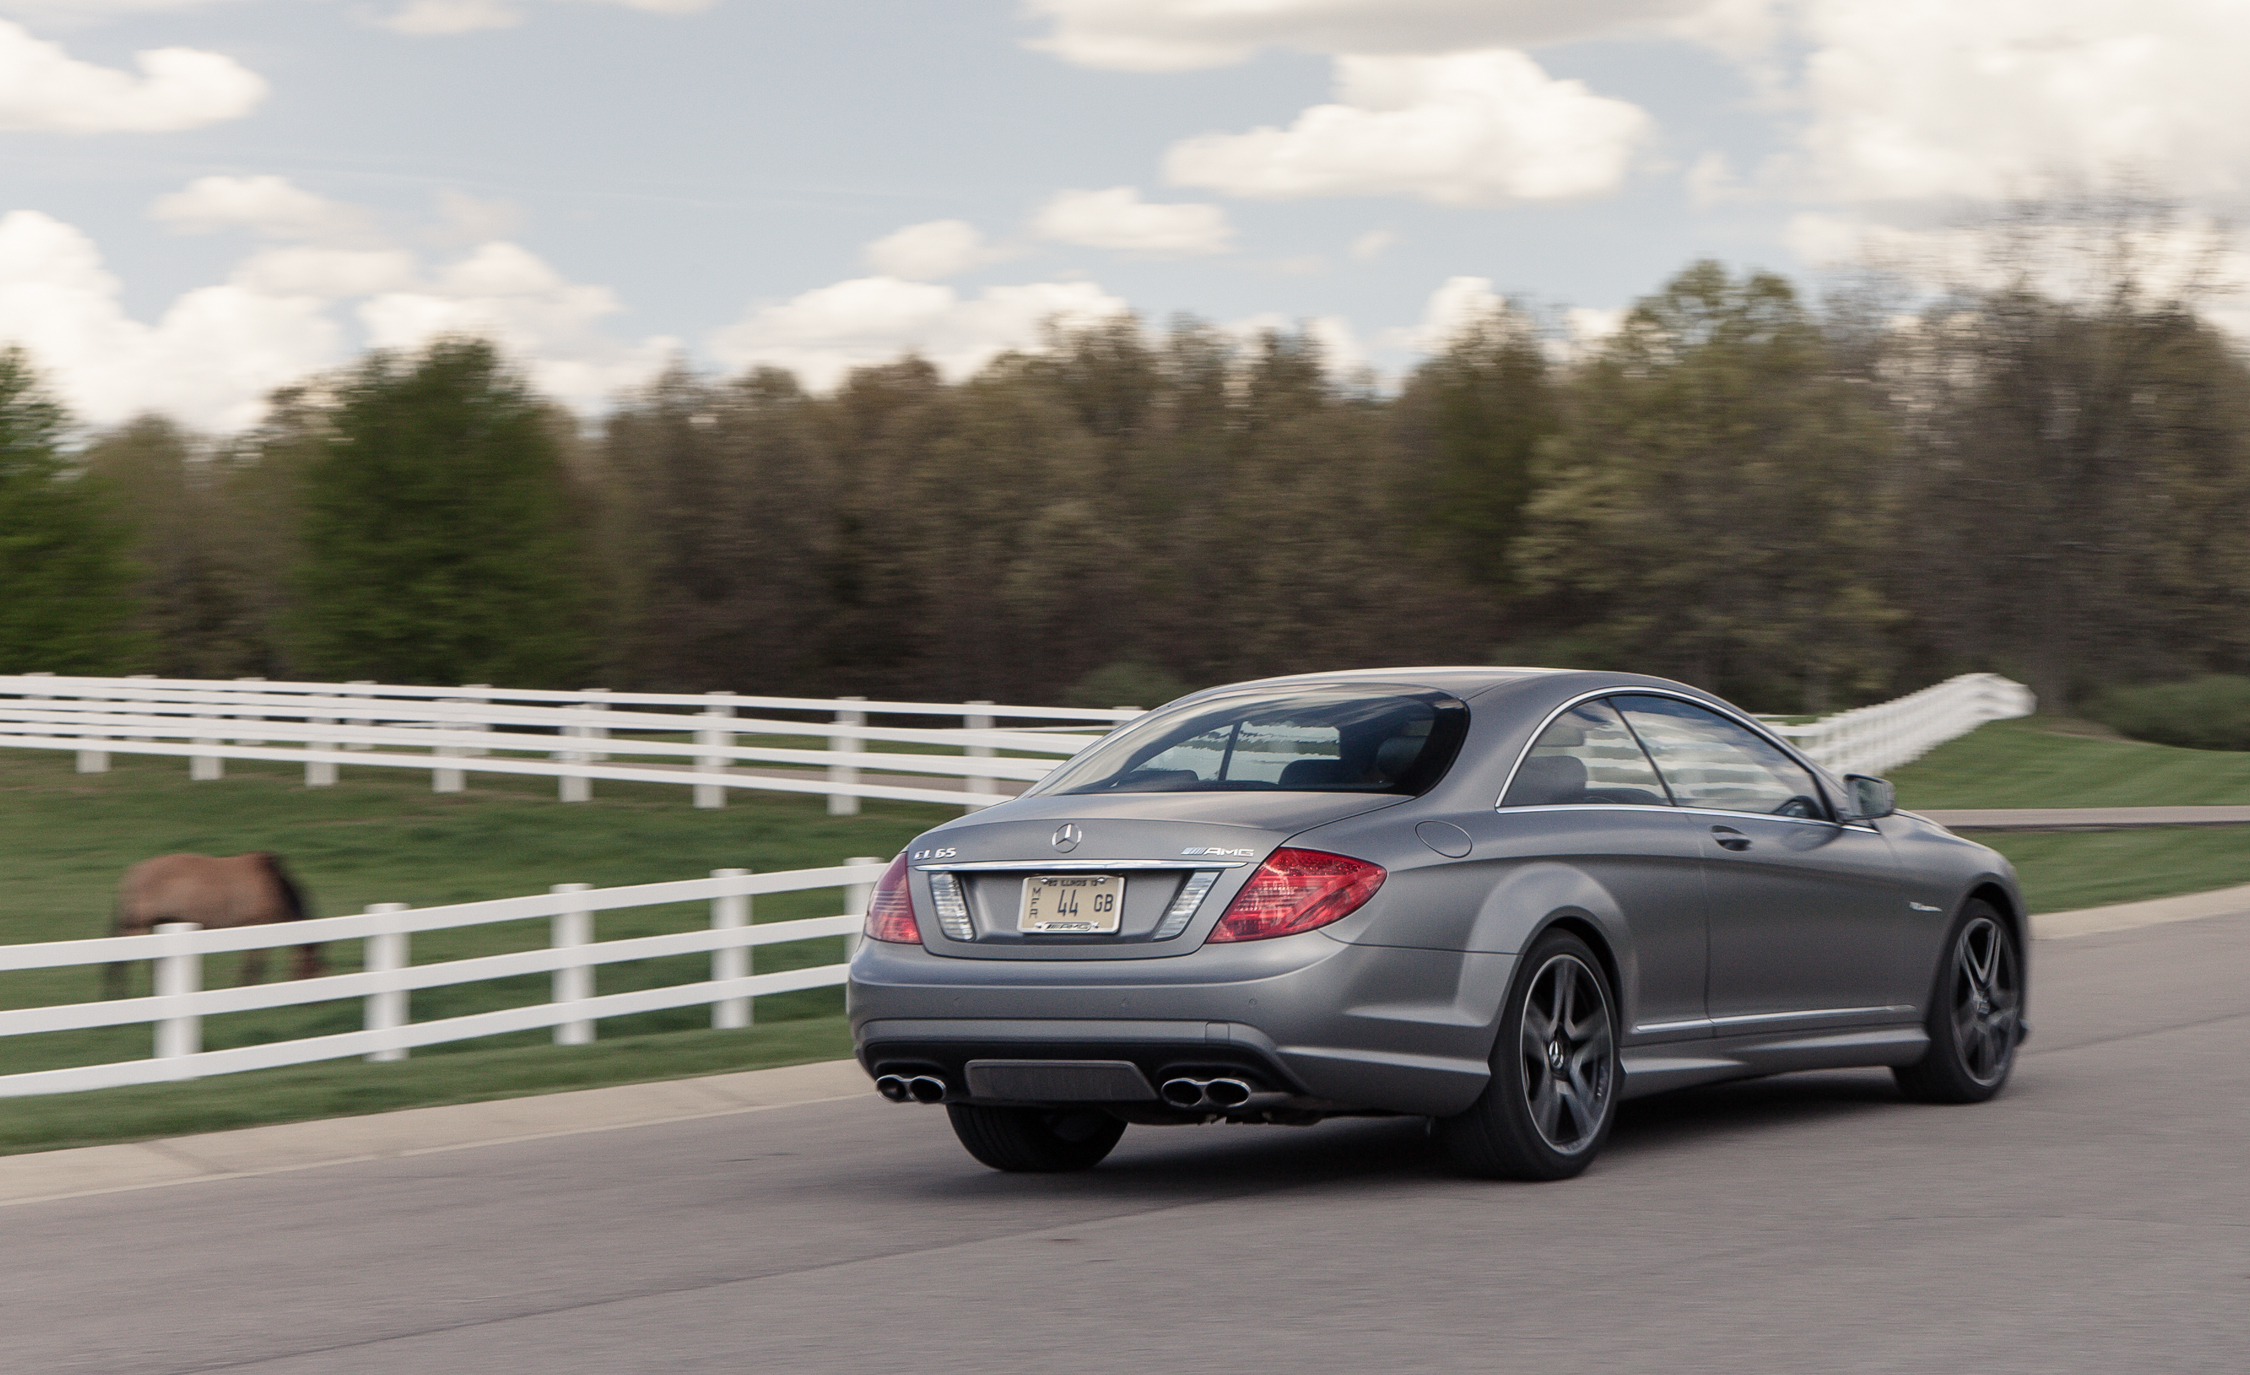 2013 Mercedes Benz CL65 AMG Test Drive Rear And Side View (Photo 24 of 27)